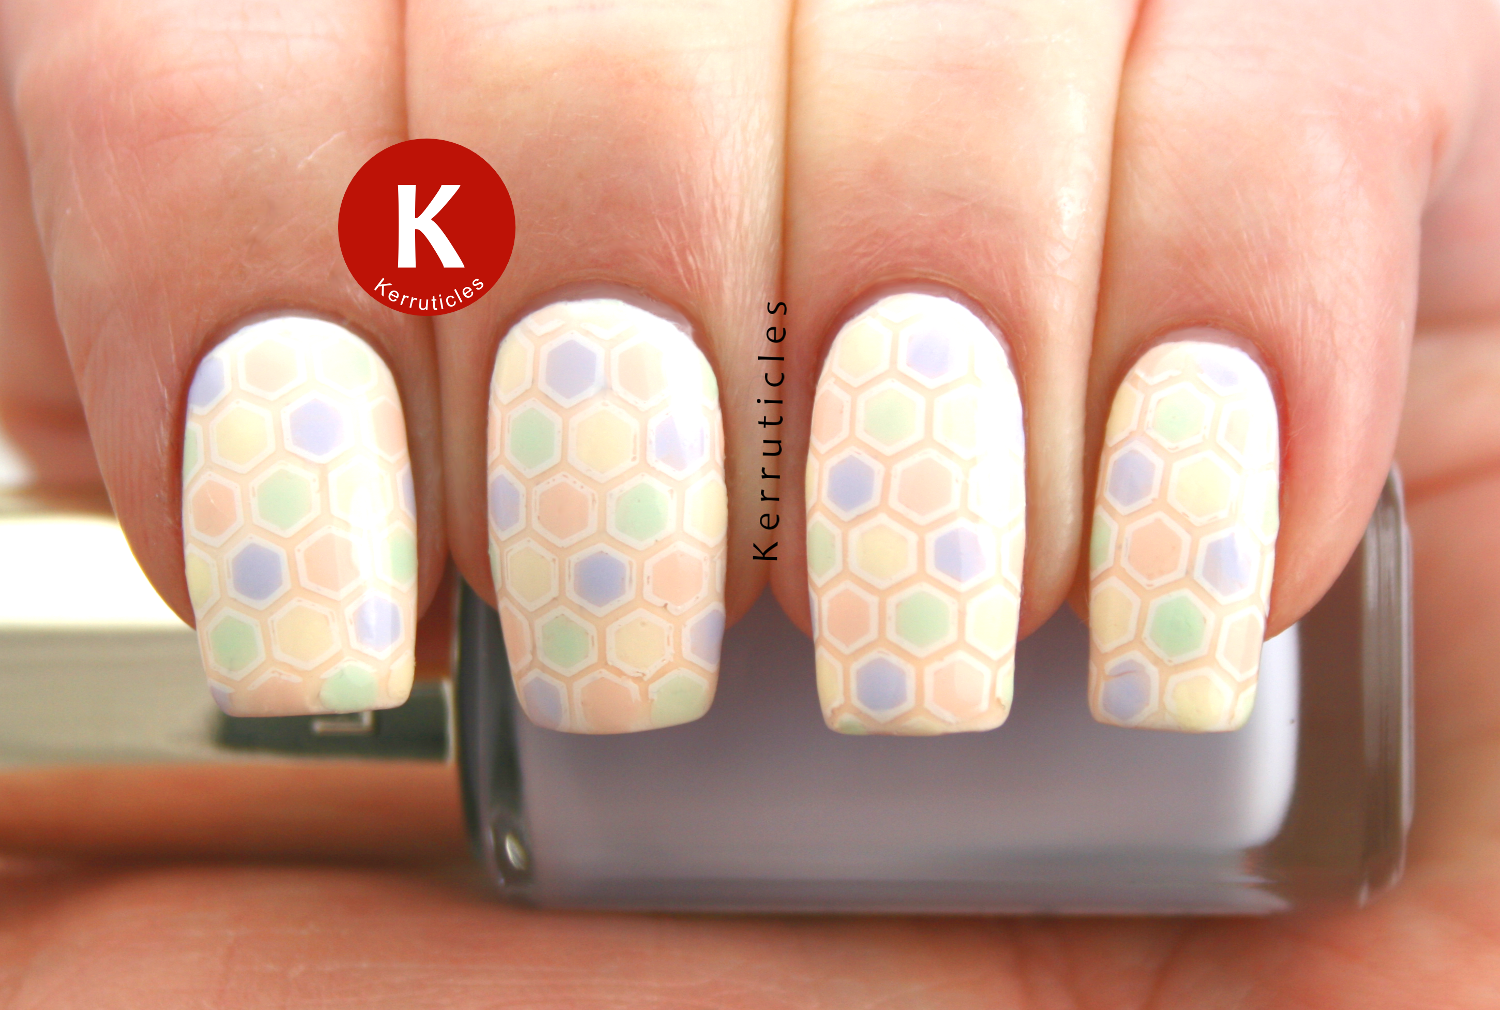 L'Oreal Les Blancs pastels stamping decal